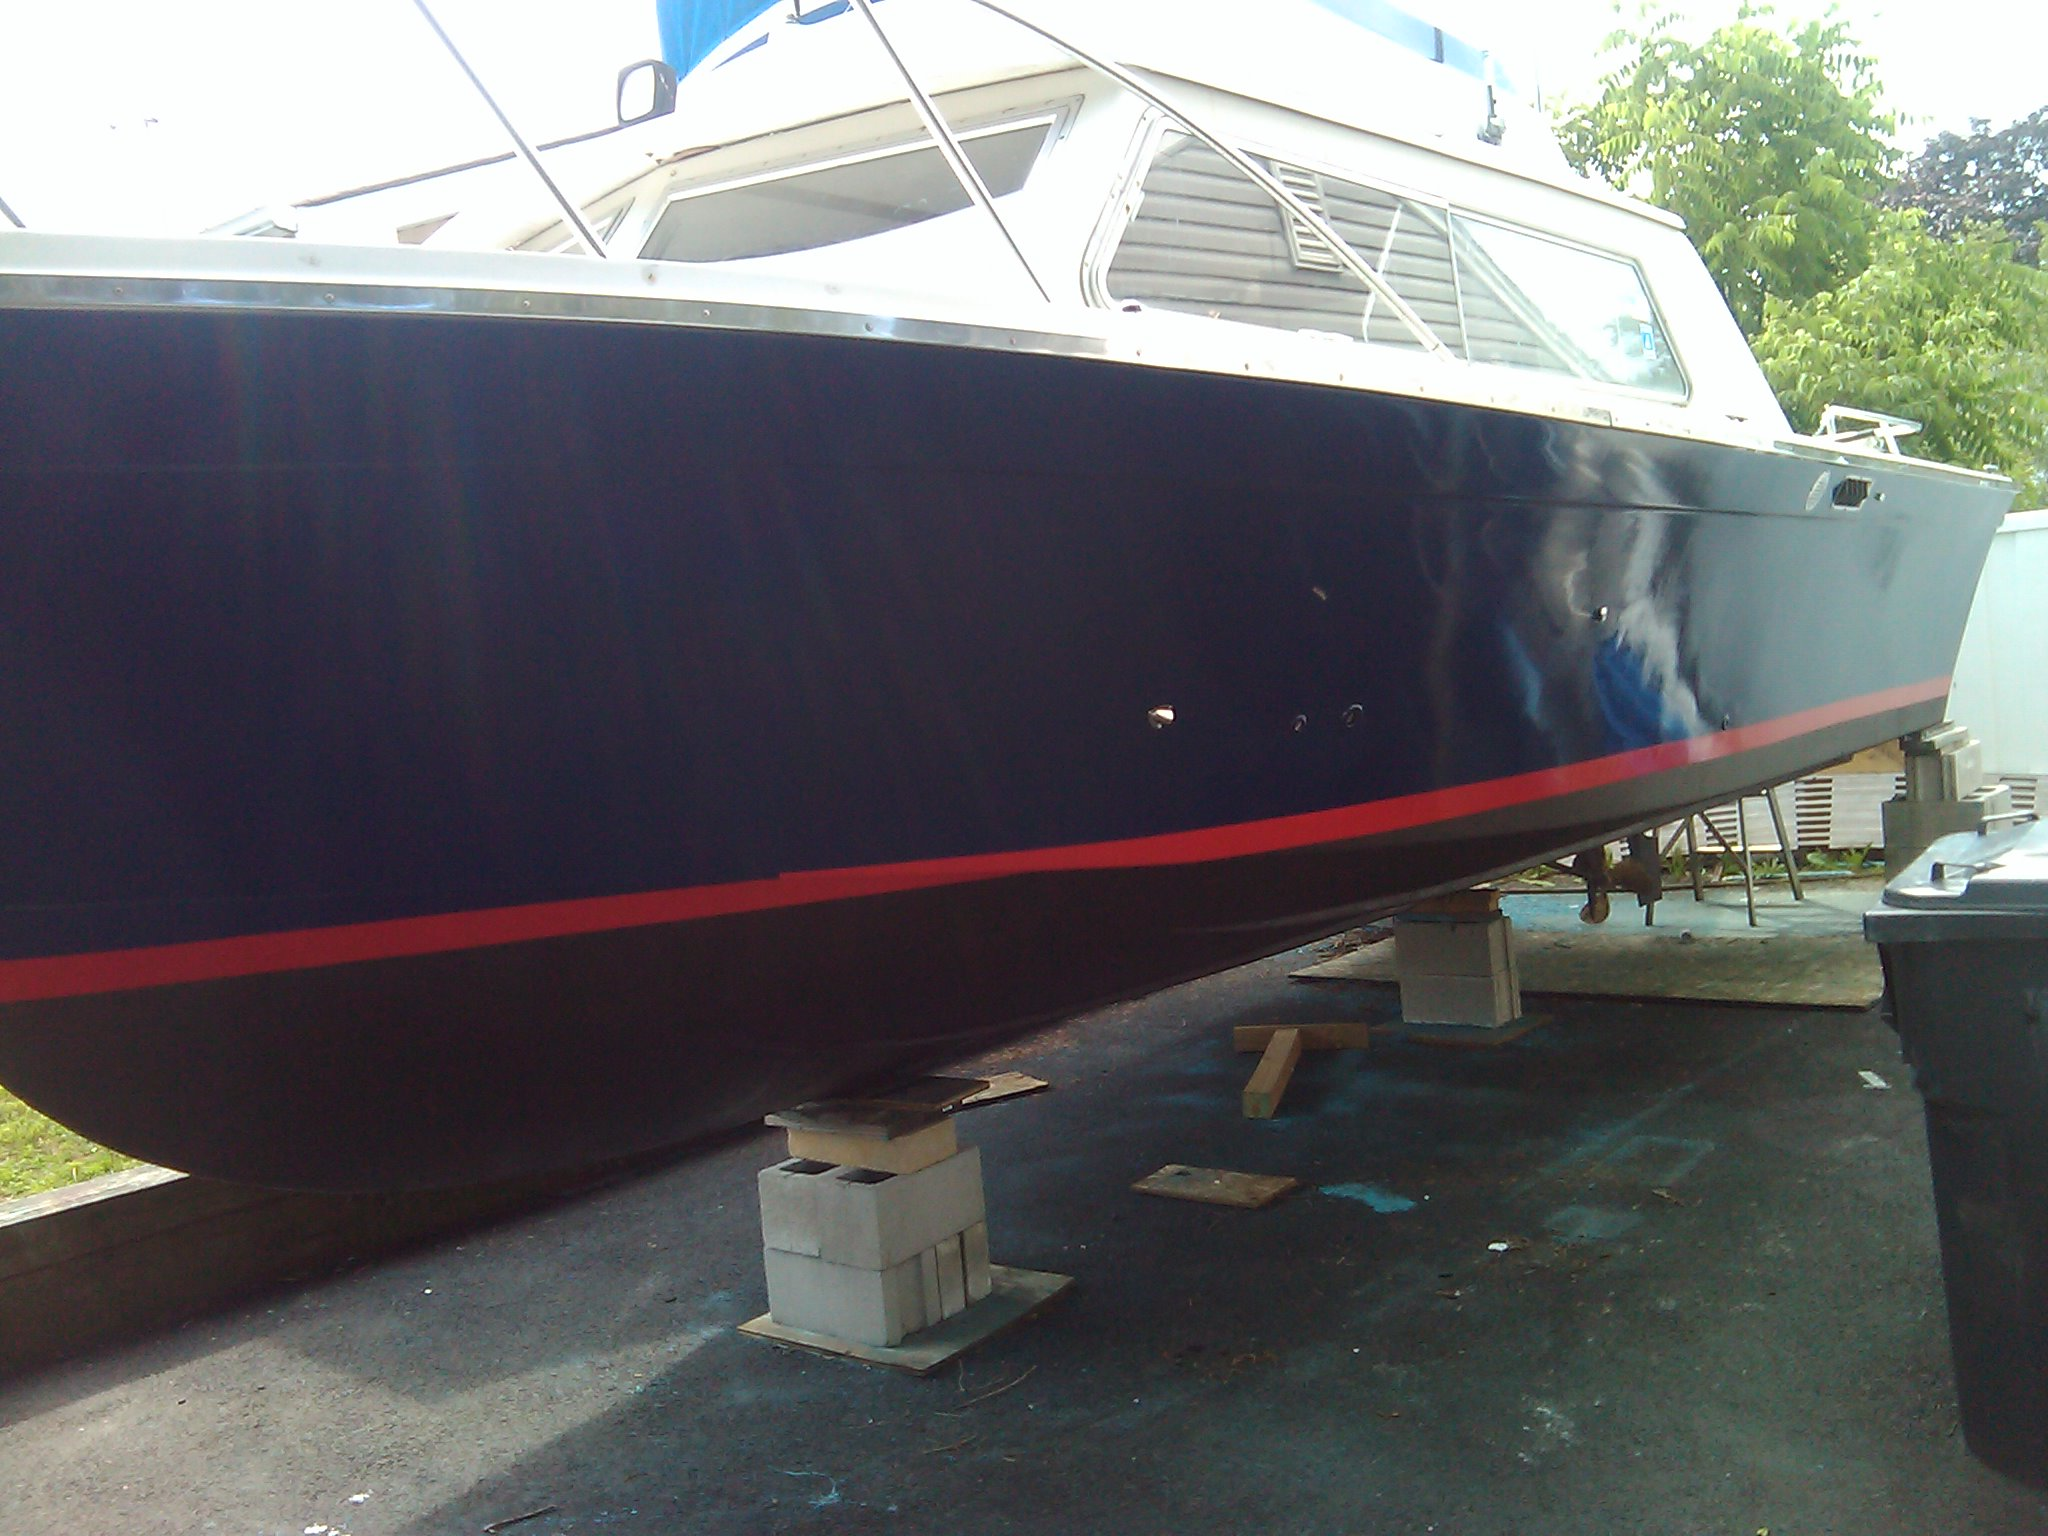 Marine topside paint colors paint color ideas rustoleum marine topside paint color chart numberedtype geenschuldenfo Image collections